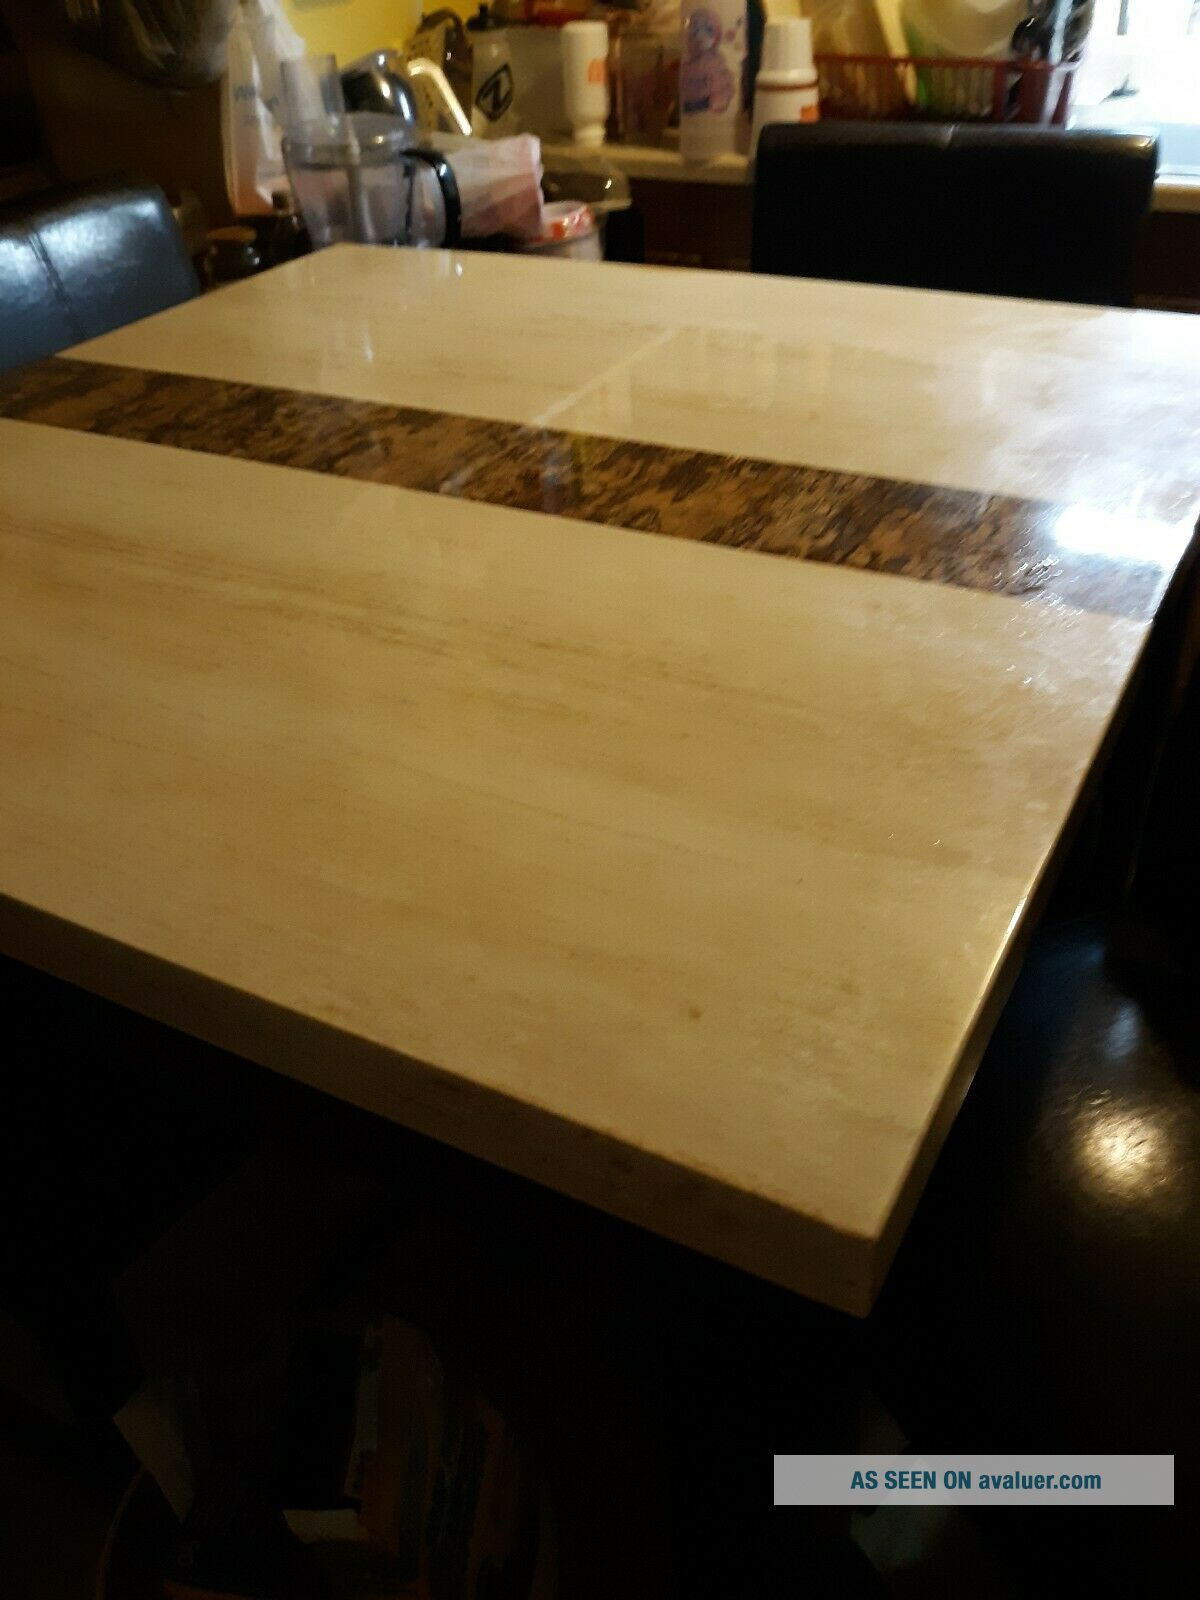 Walden kitchen table &4 both are in just not fit for are home